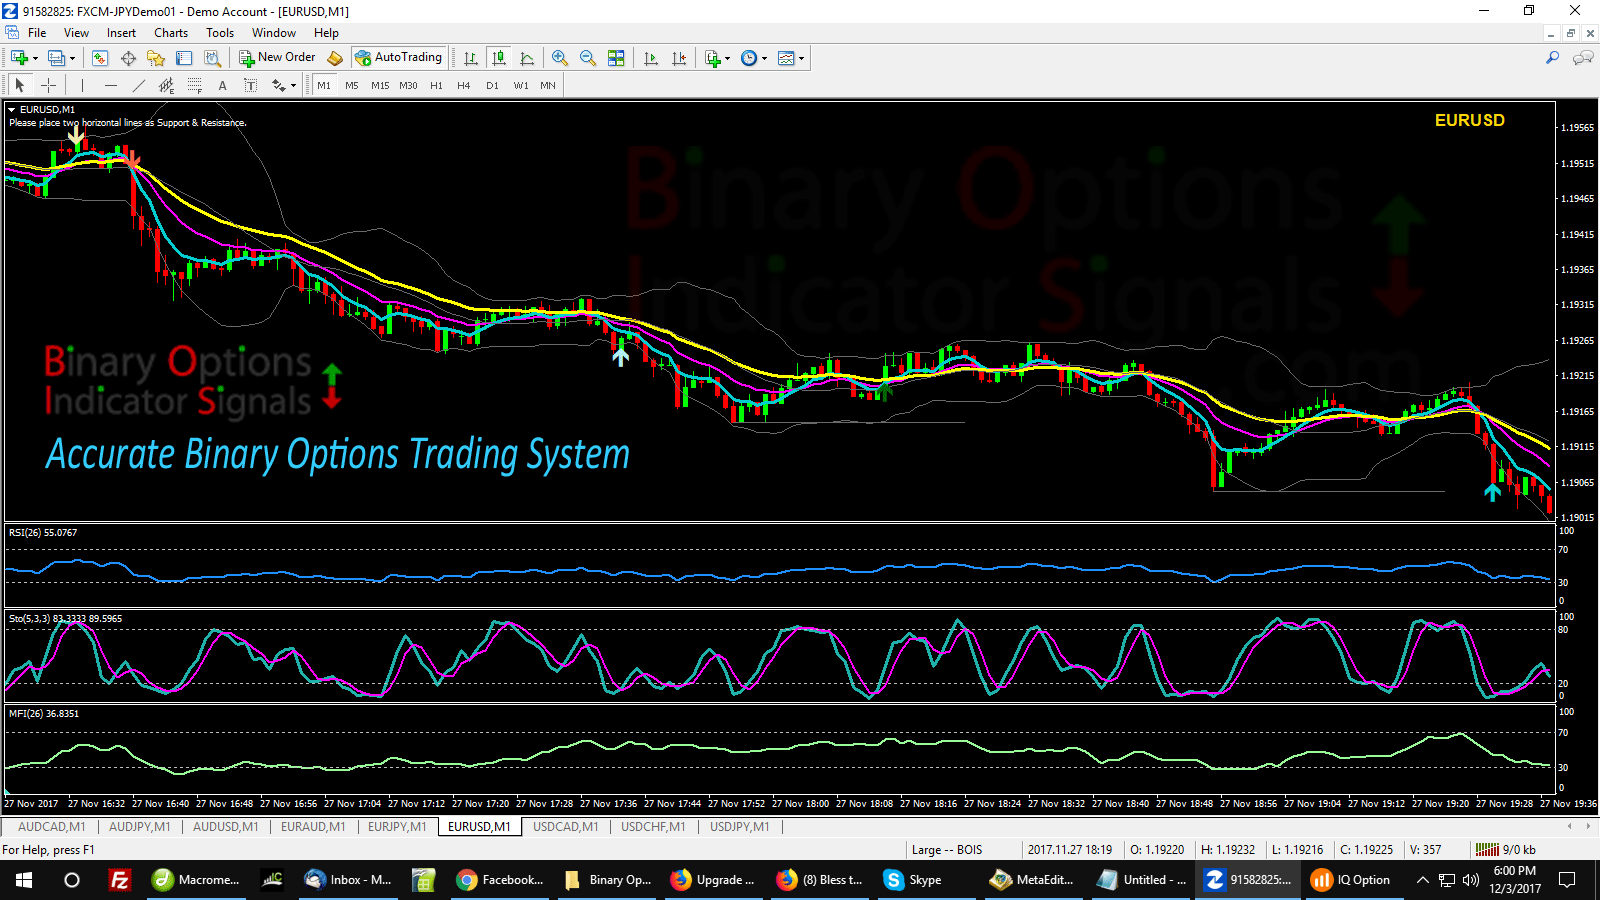 With binary options